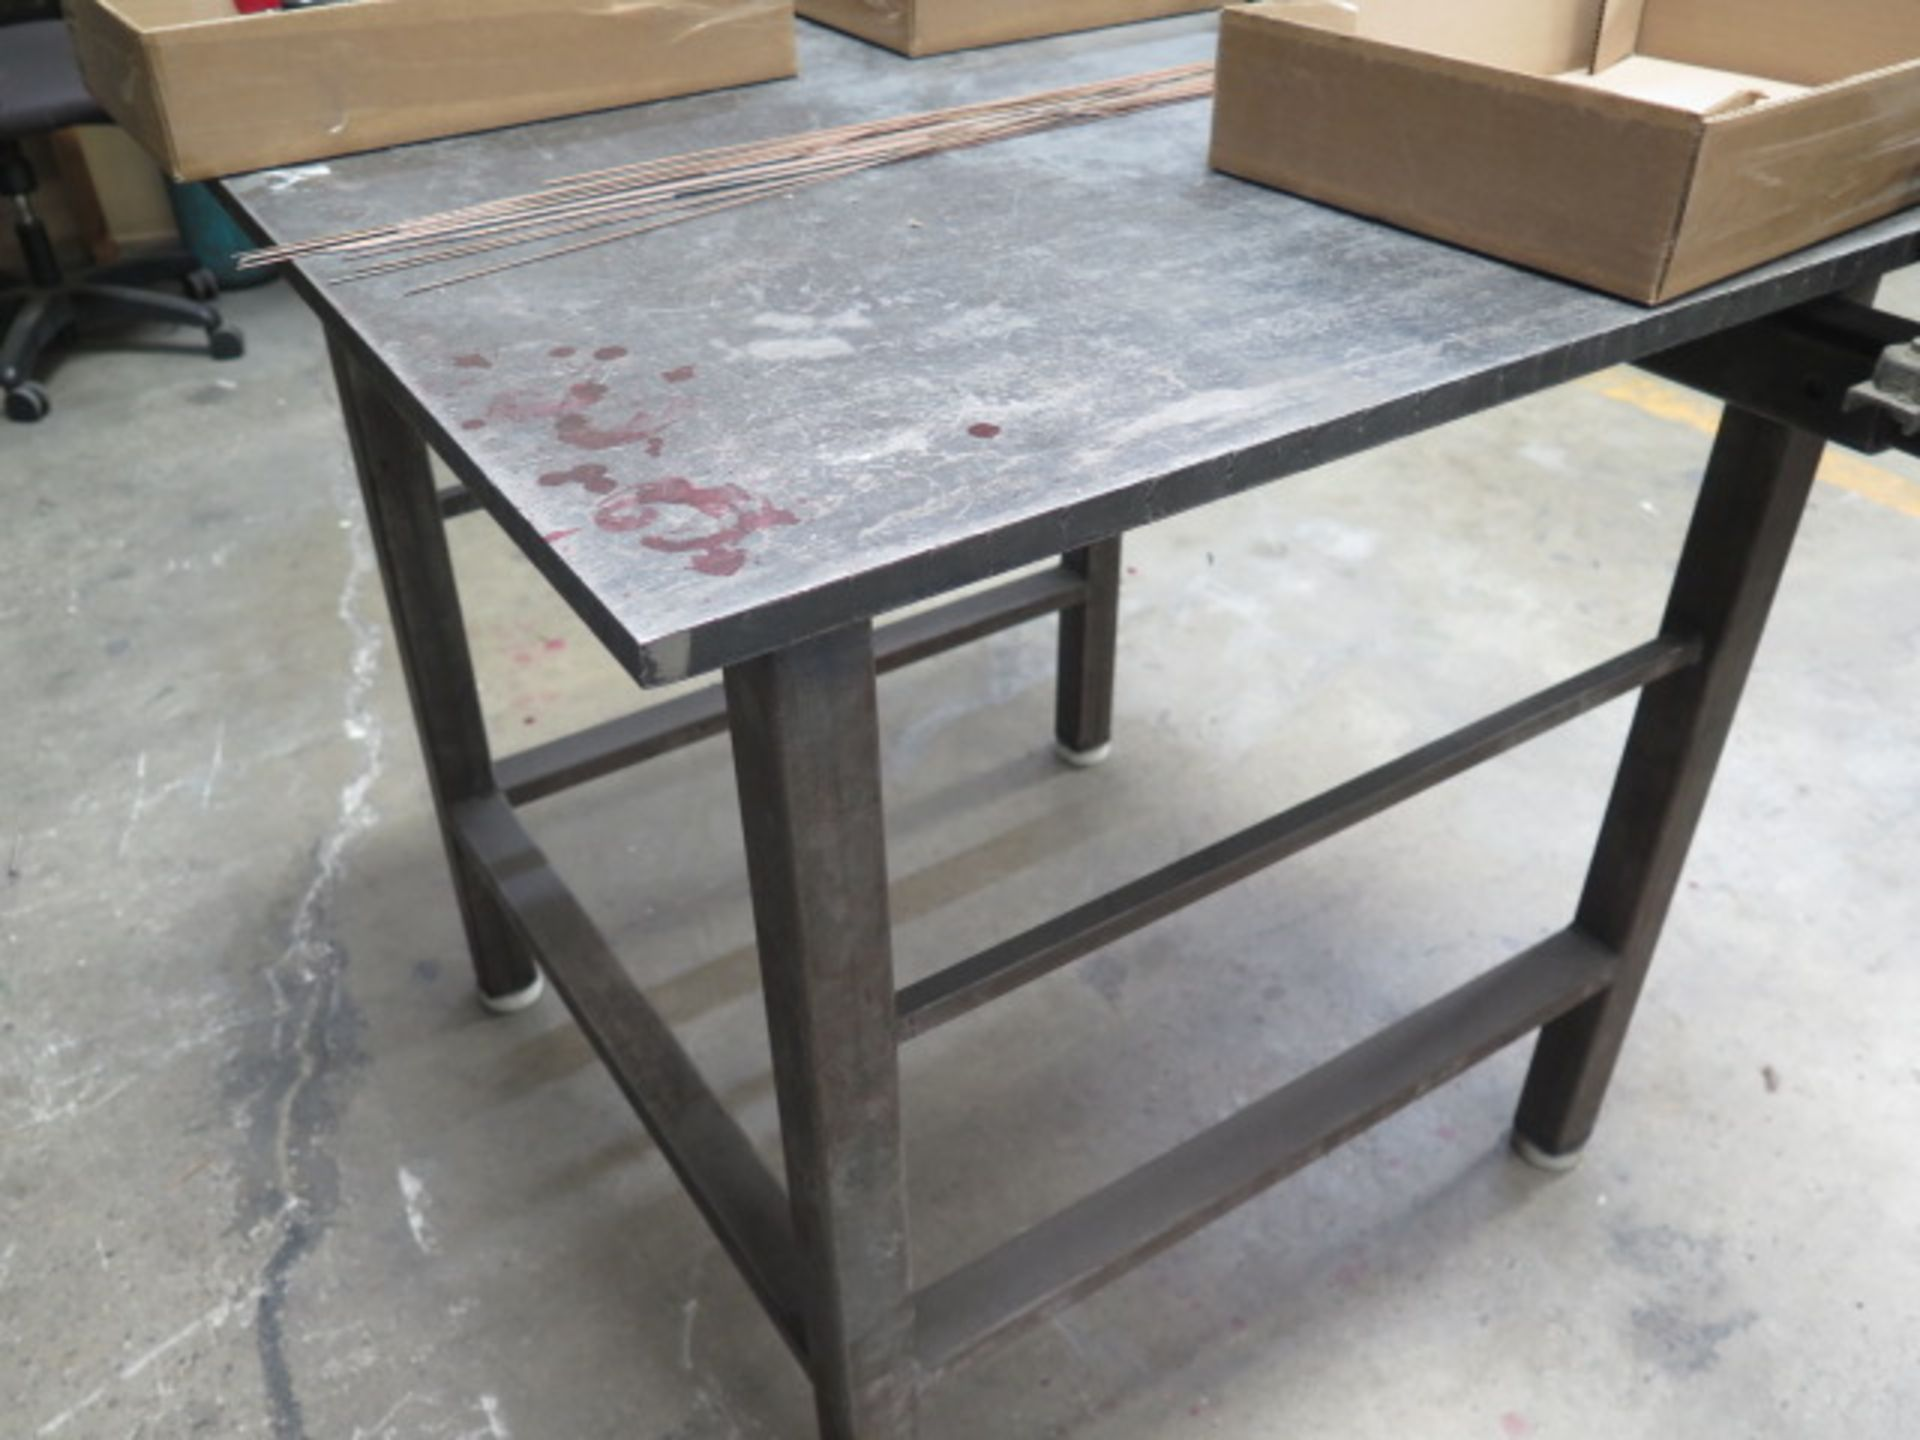 Welding Table w/ Bench Vise (SOLD AS-IS - NO WARRANTY) - Image 2 of 4